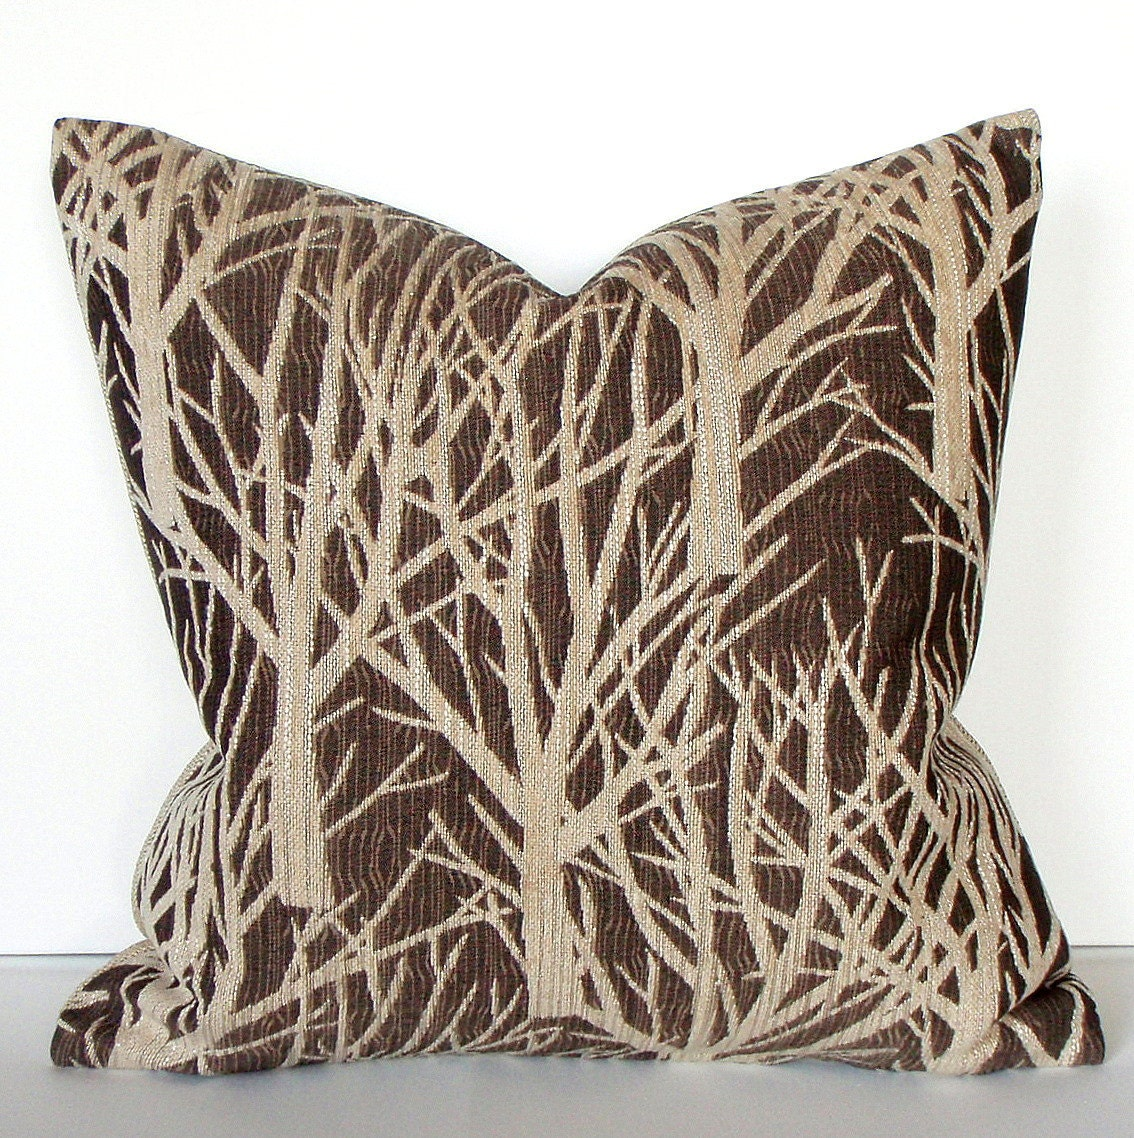 Tree  Branches Brown Ivory and Beige 20x20 Decorative Throw Pillow Cover - couchdwellers